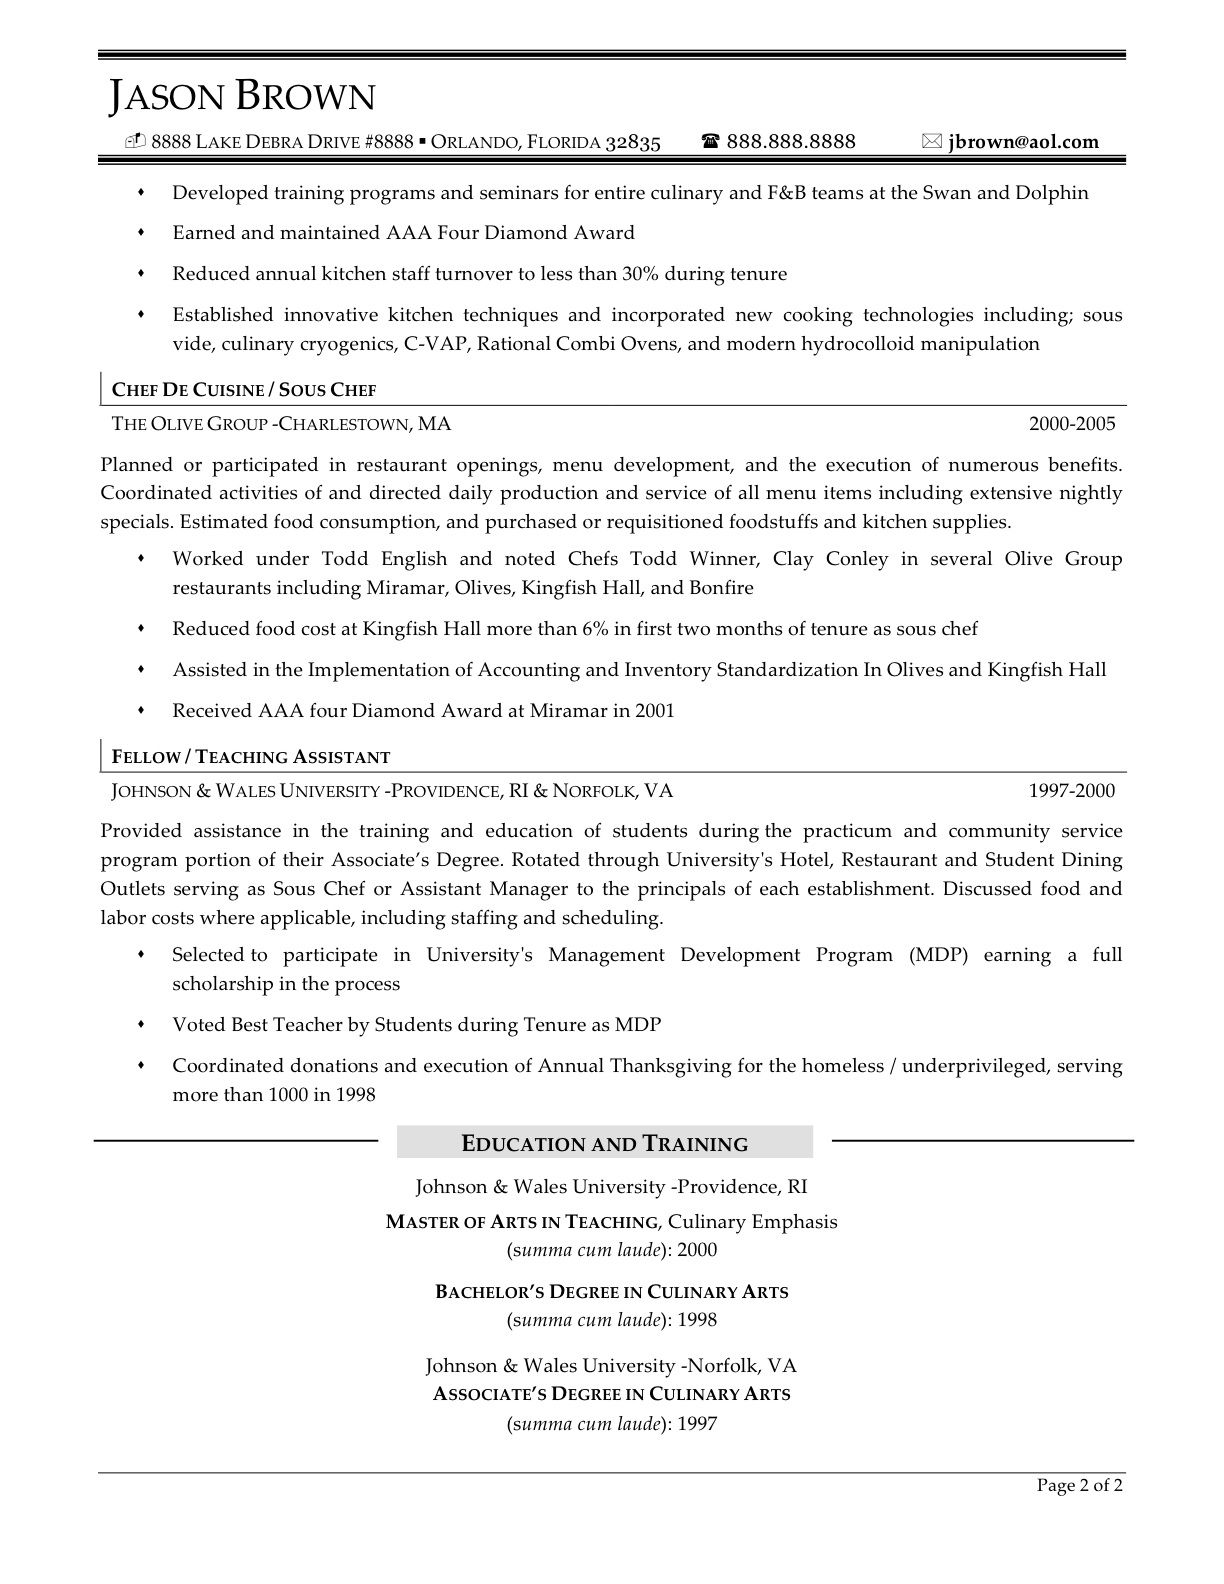 resume Cook Resume chef cook resume examples httpwww jobresume websitechef websitechef